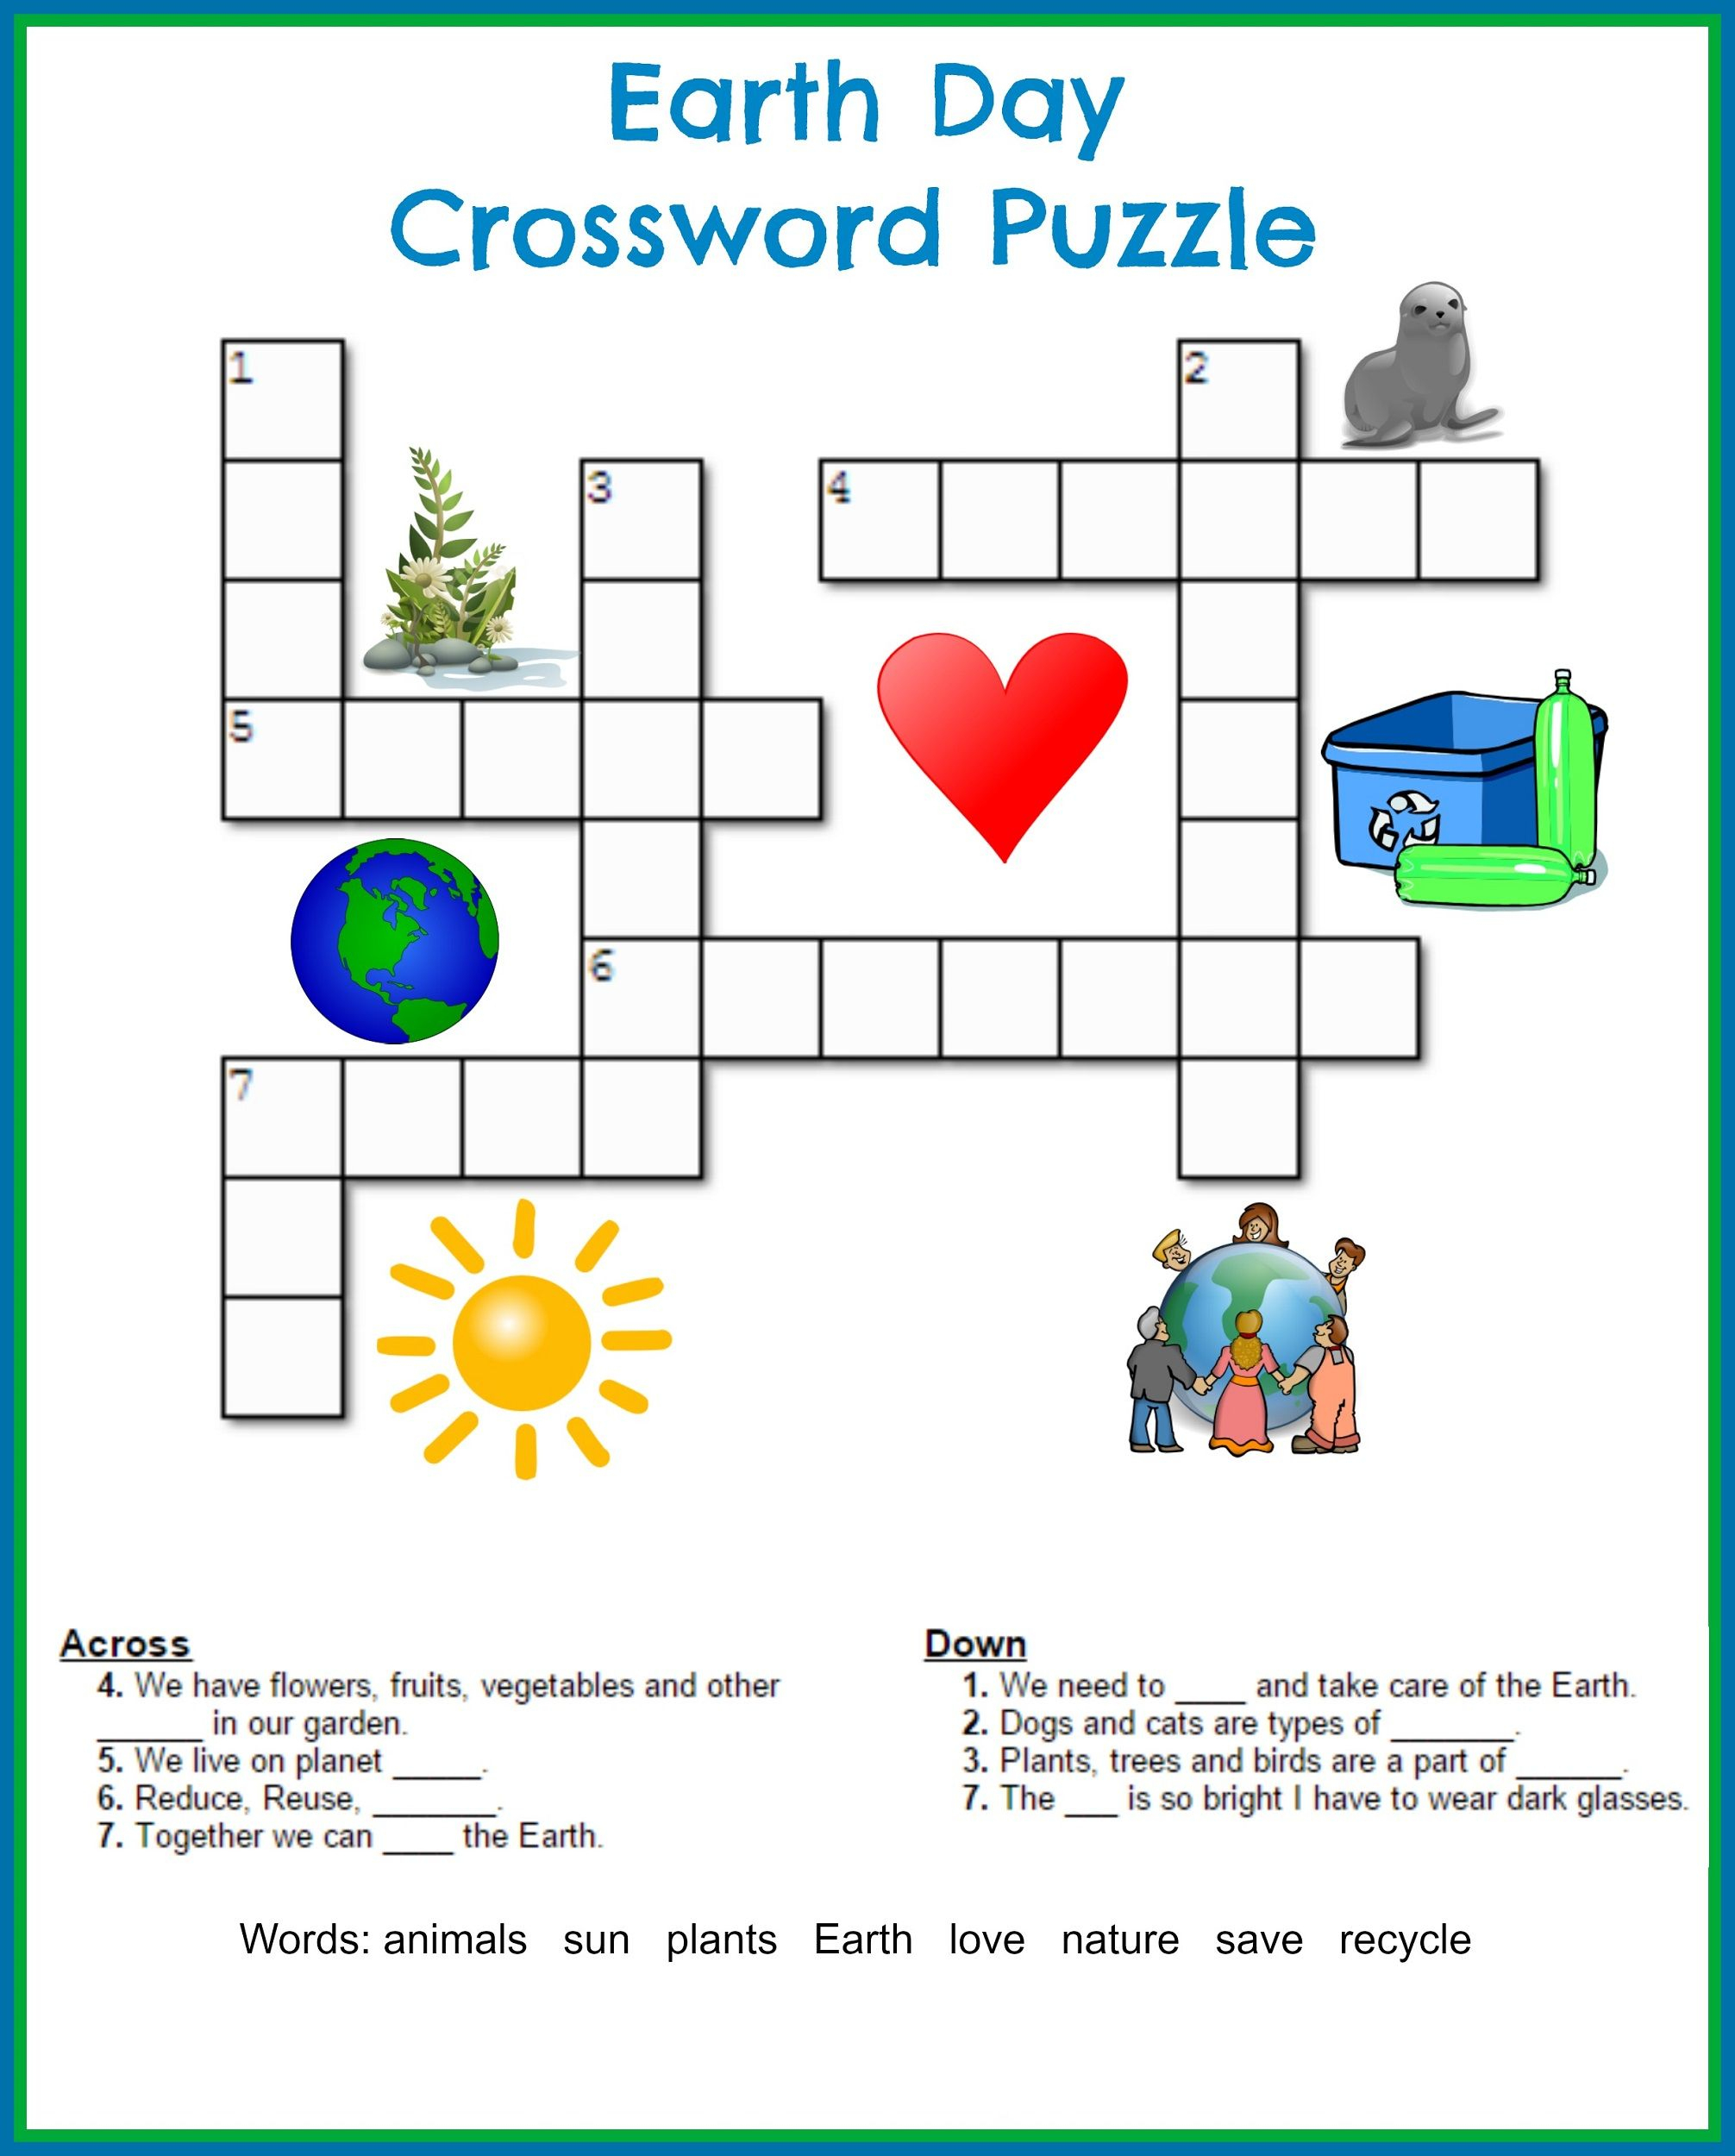 Printable Crossword Puzzles Kids | Crossword Puzzles On Earth - Printable Crosswords For Year 4